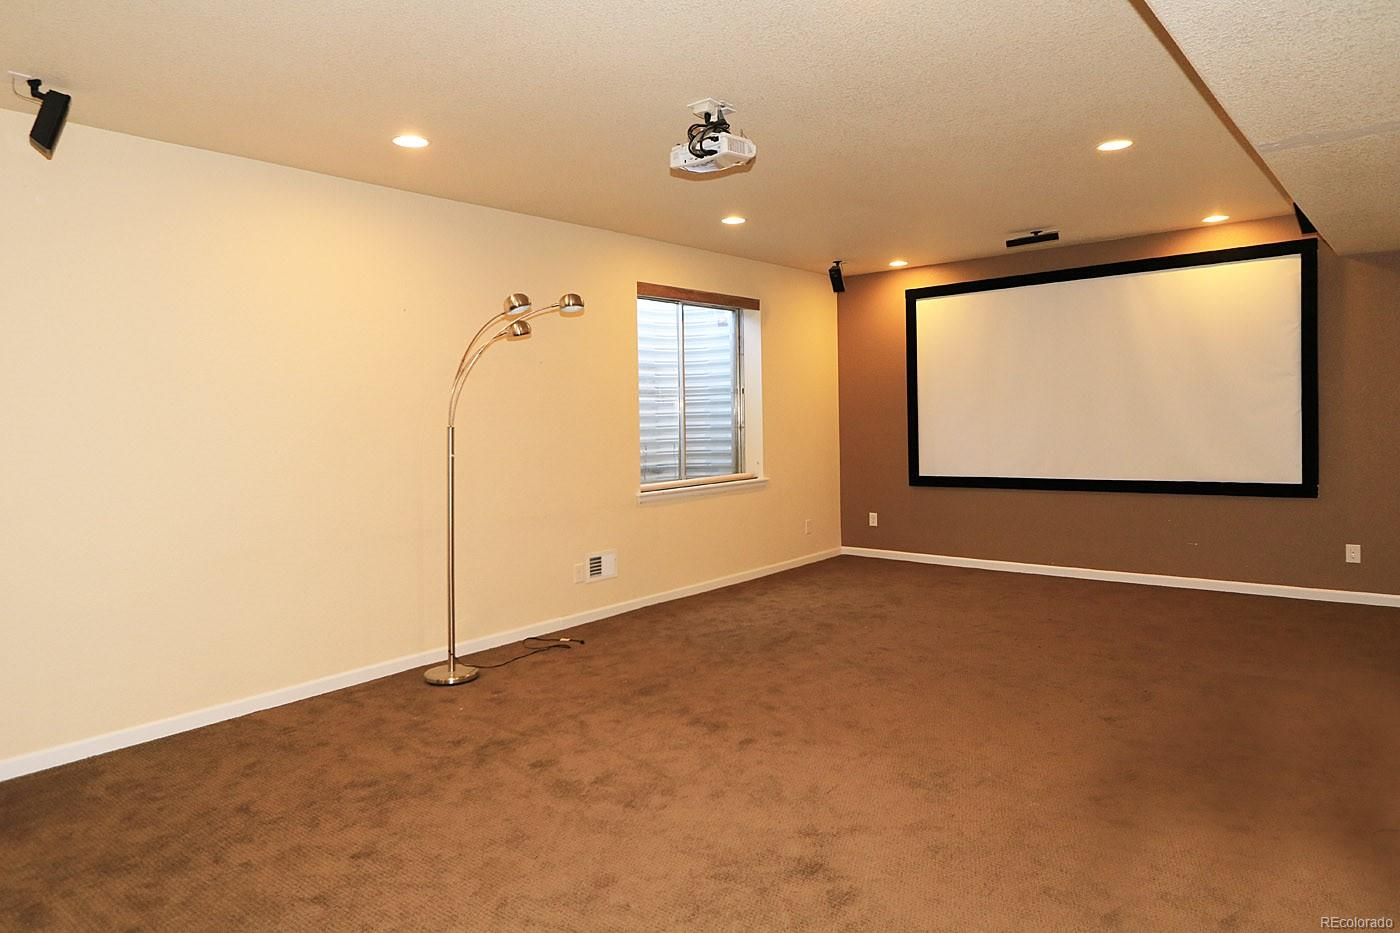 Projection/Family Room In Basement